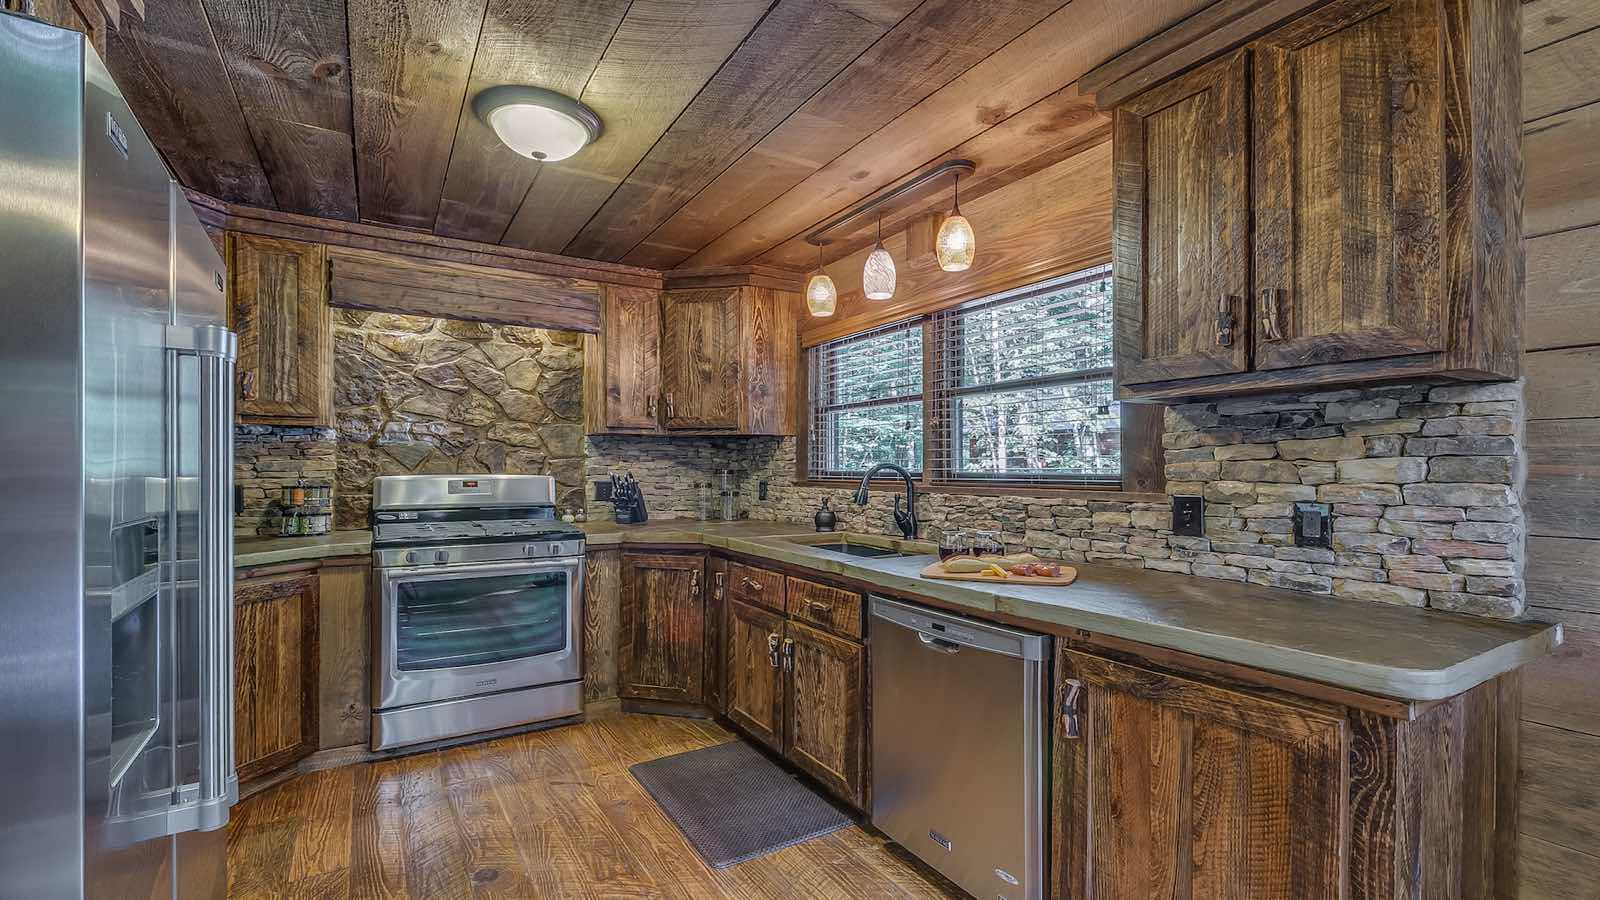 Rental Rent Refined Rustic Rental Cabin - Blue Ridge, Ga